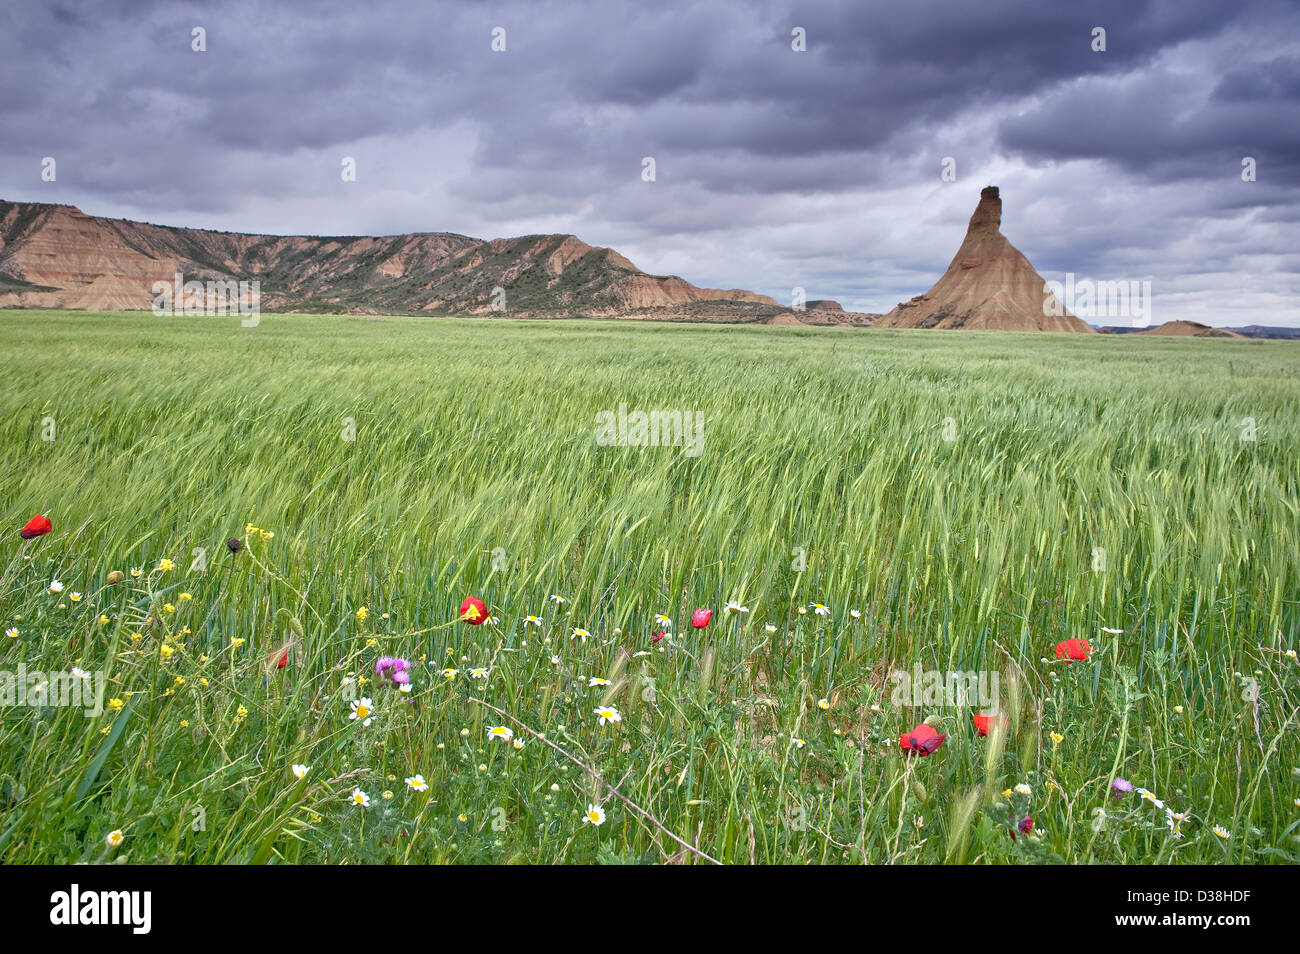 Tall grass blowing in wind Photo Stock